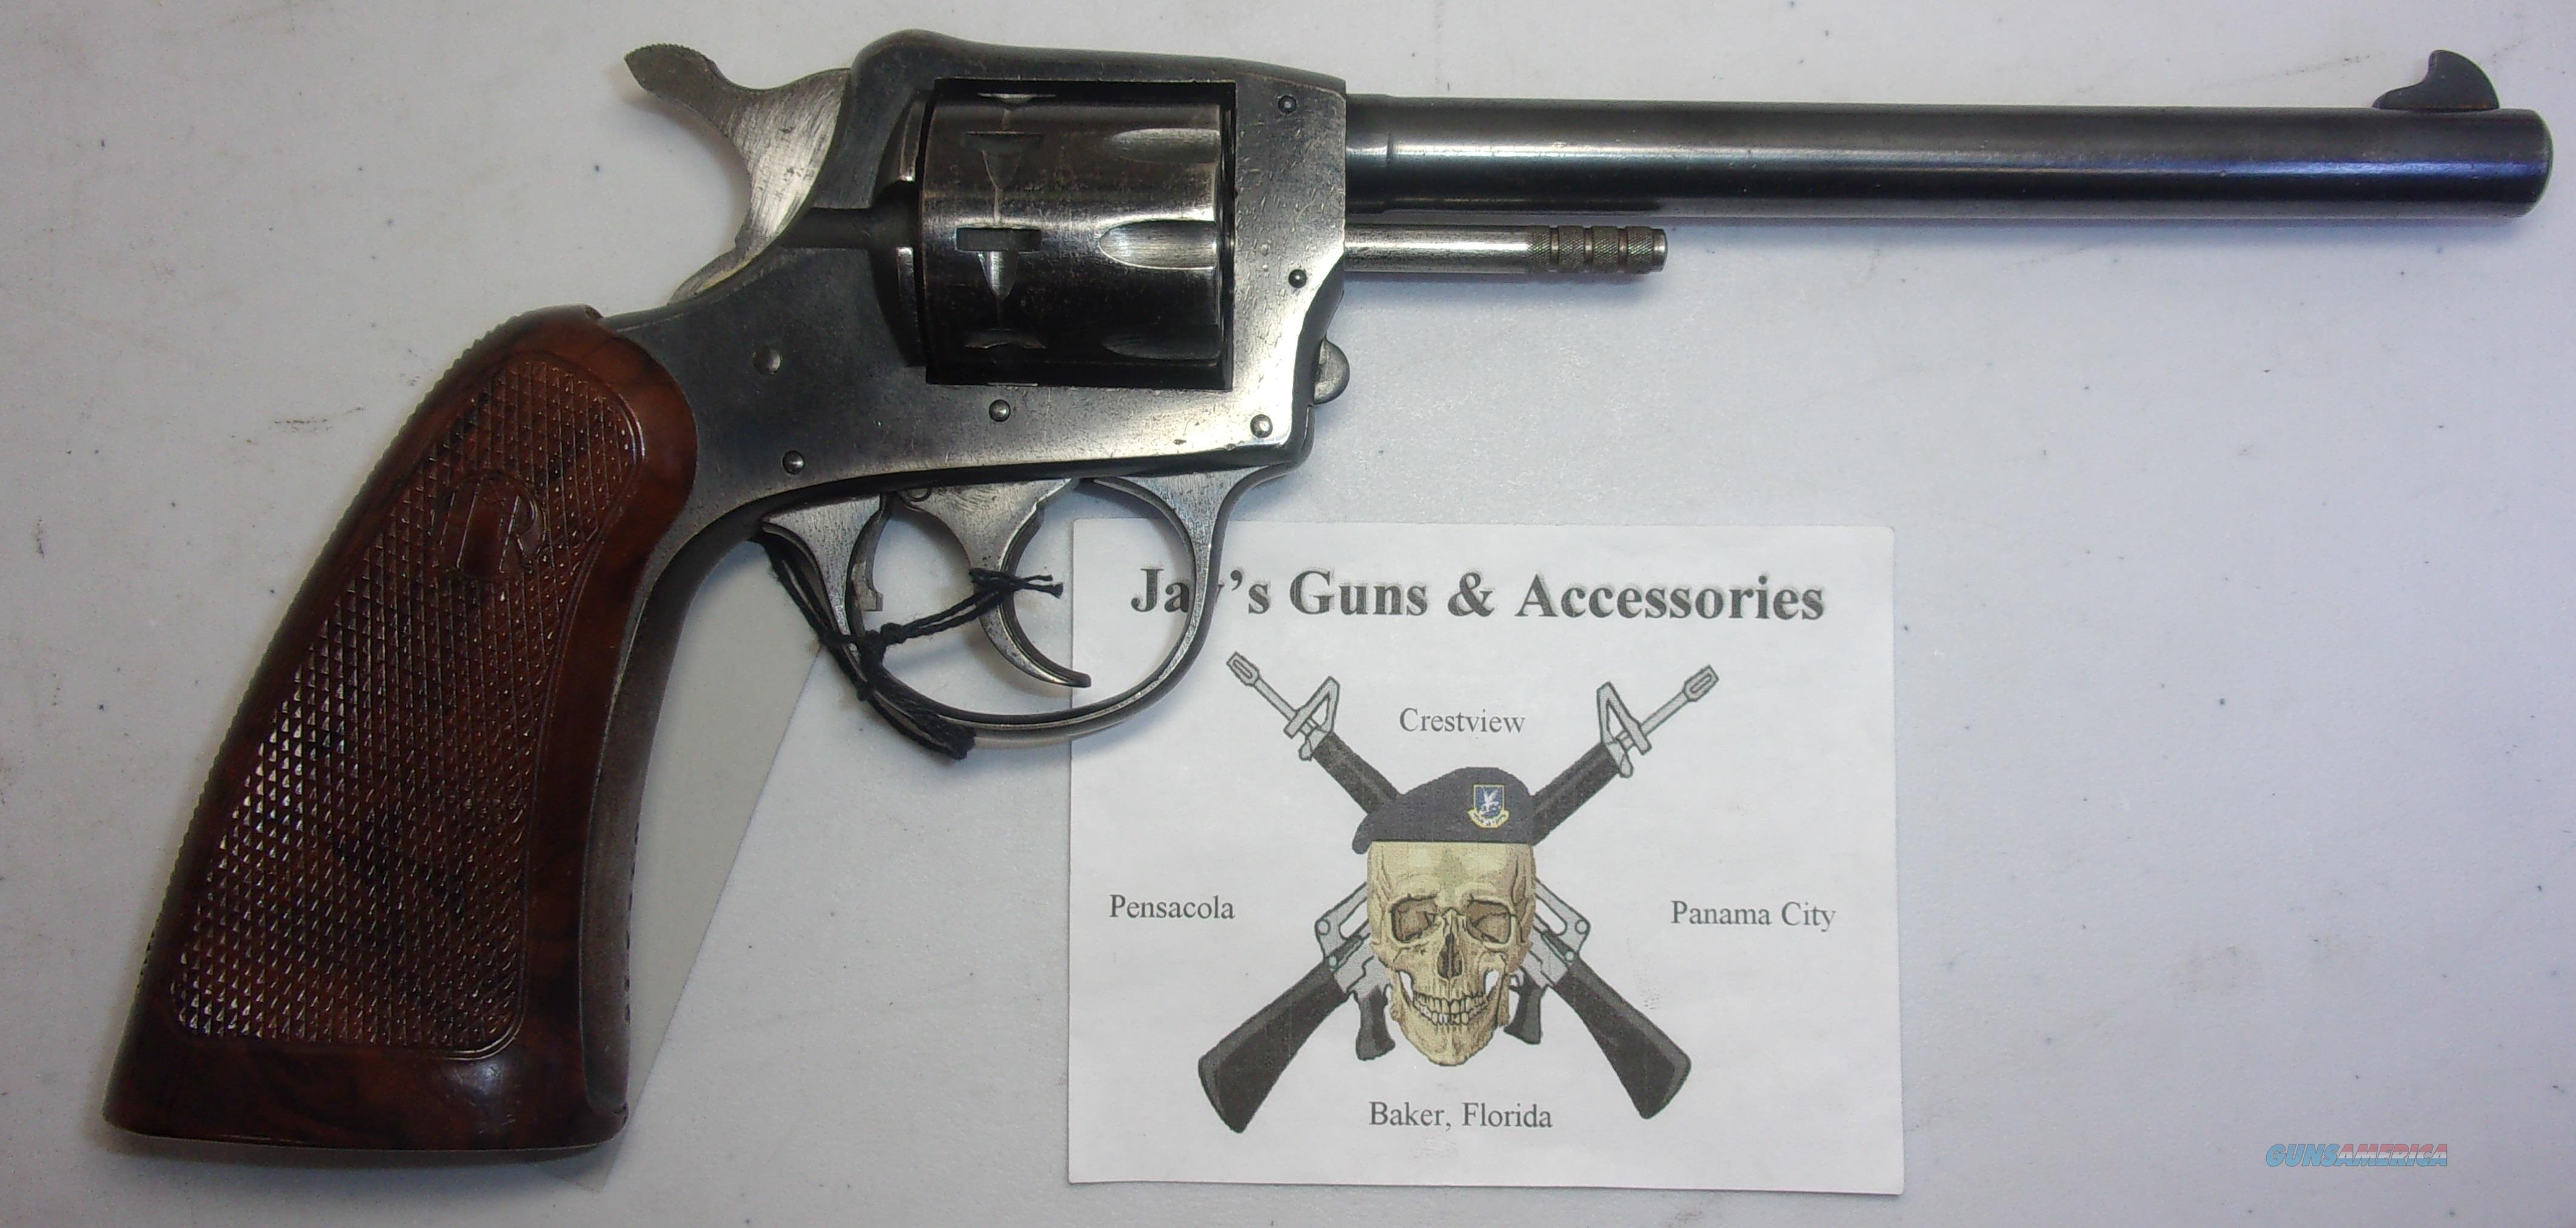 H&R Arms 922  Guns > Pistols > Harrington & Richardson Pistols